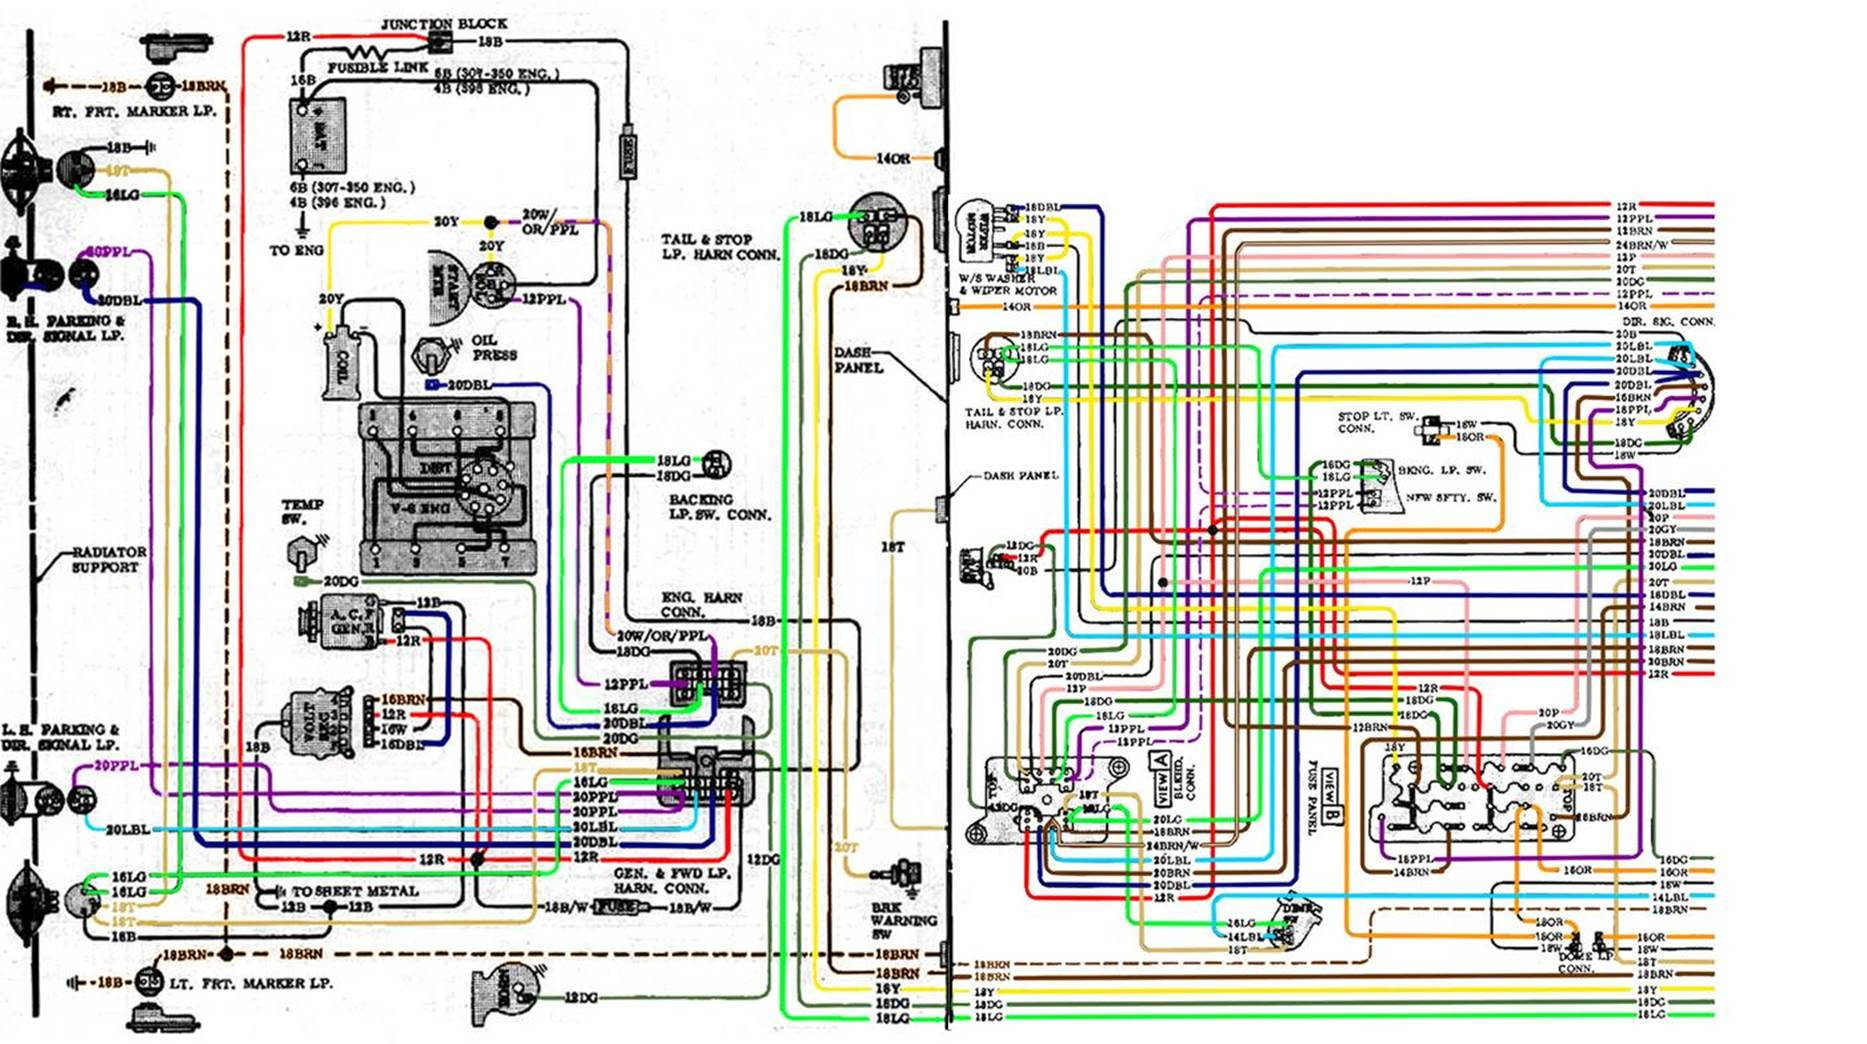 image002 67 72 chevy wiring diagram 71 chevelle wiring harness at soozxer.org